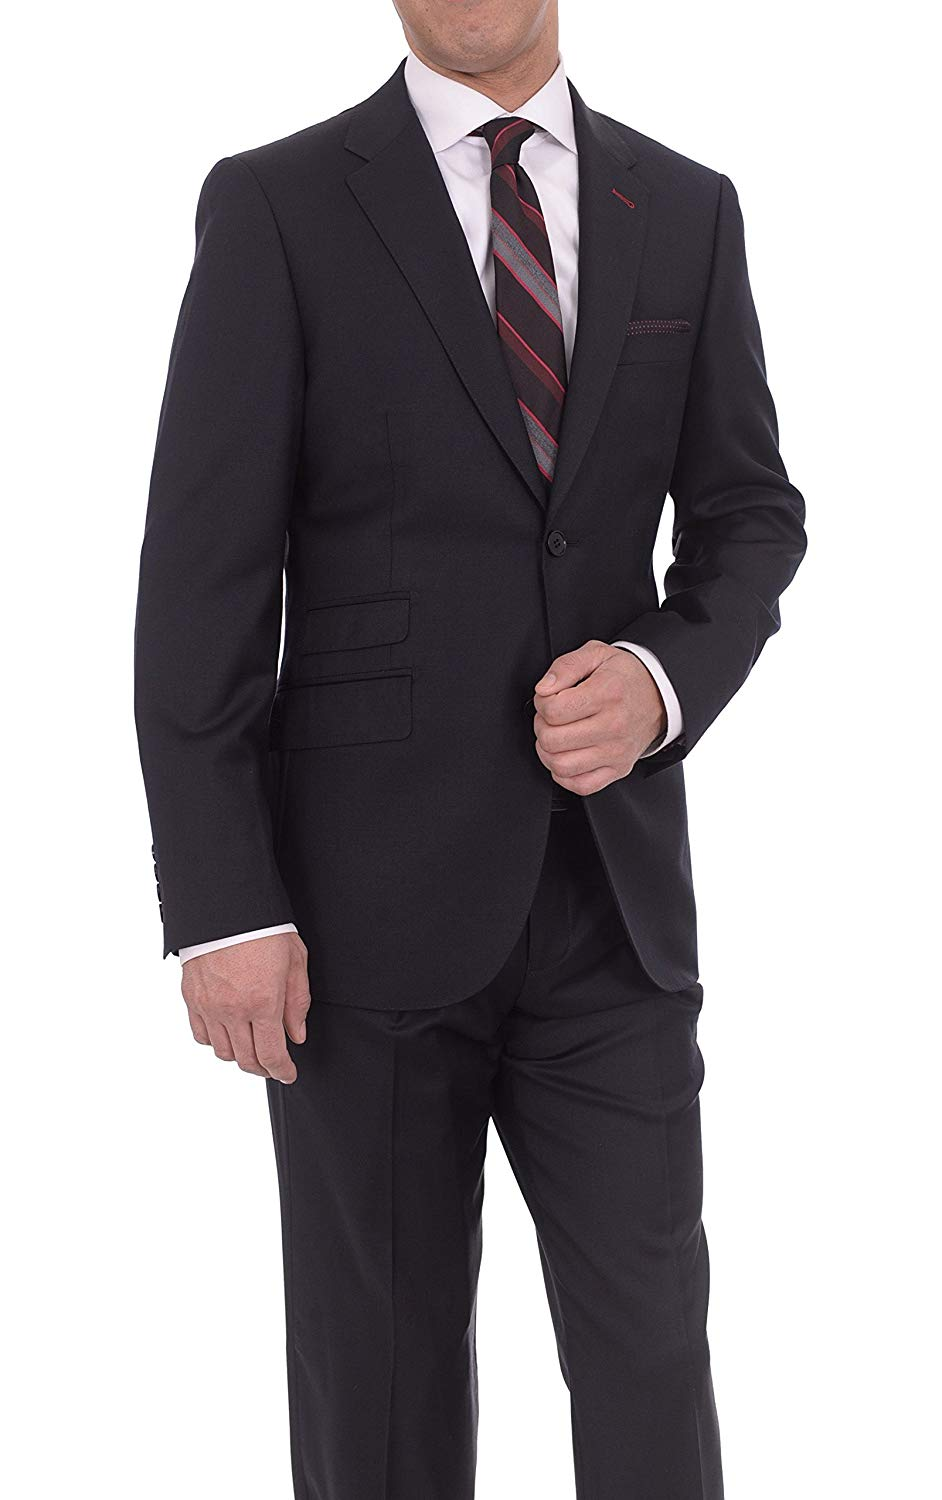 6012ecf98377a6 Get Quotations · Lvs By Levinas Charcoal Half Canvassed Wool Cashmere Suit  With Ticket Pocket